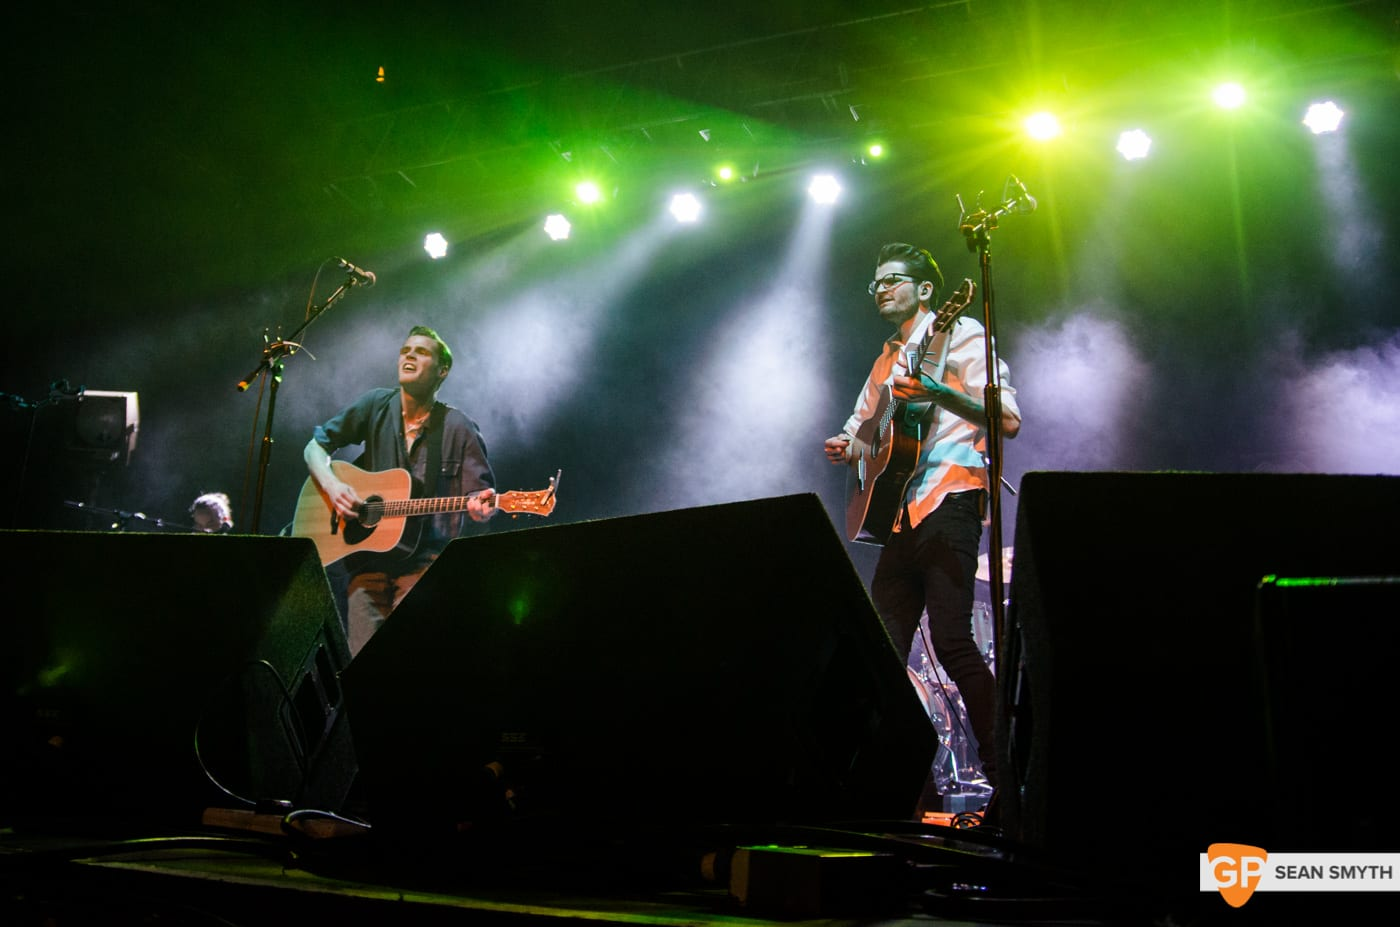 hudson-taylor-at-the-olympia-theatre-26-2-15-by-sean-smyth-12-of-26_16569194218_o